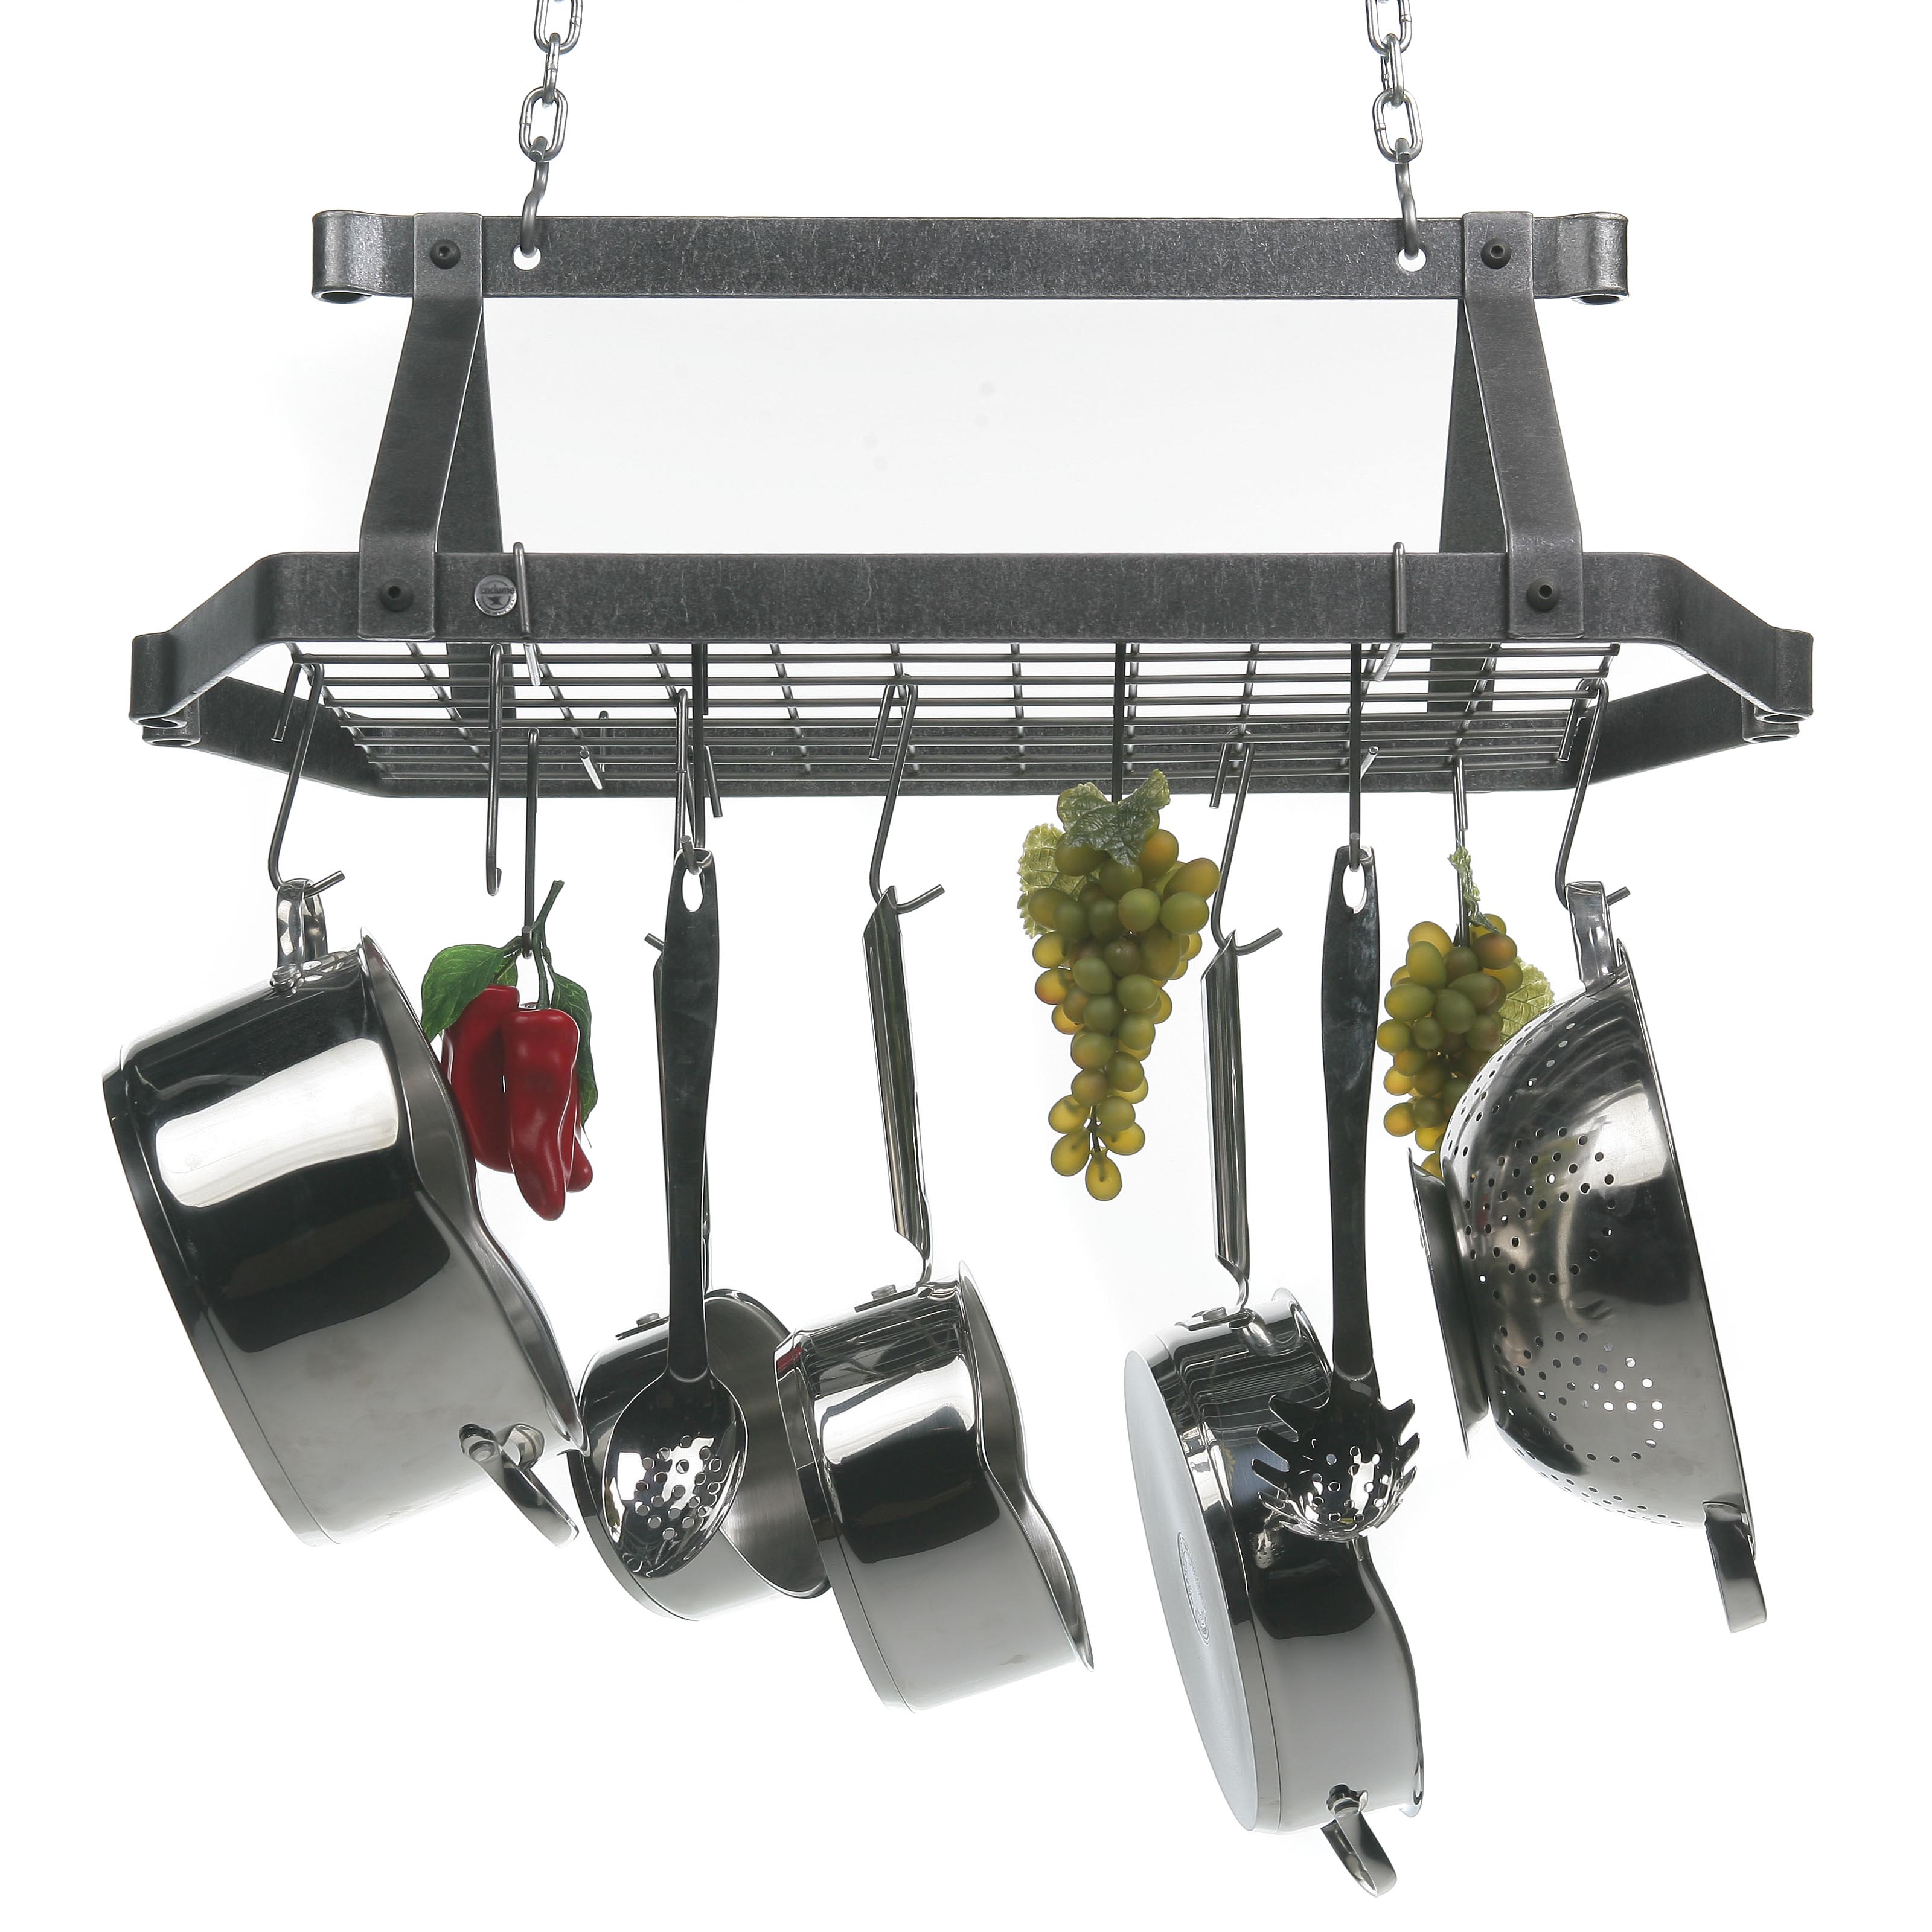 Decor retro rectangle kitchen pot rack pot racks at for Pot racks for kitchen